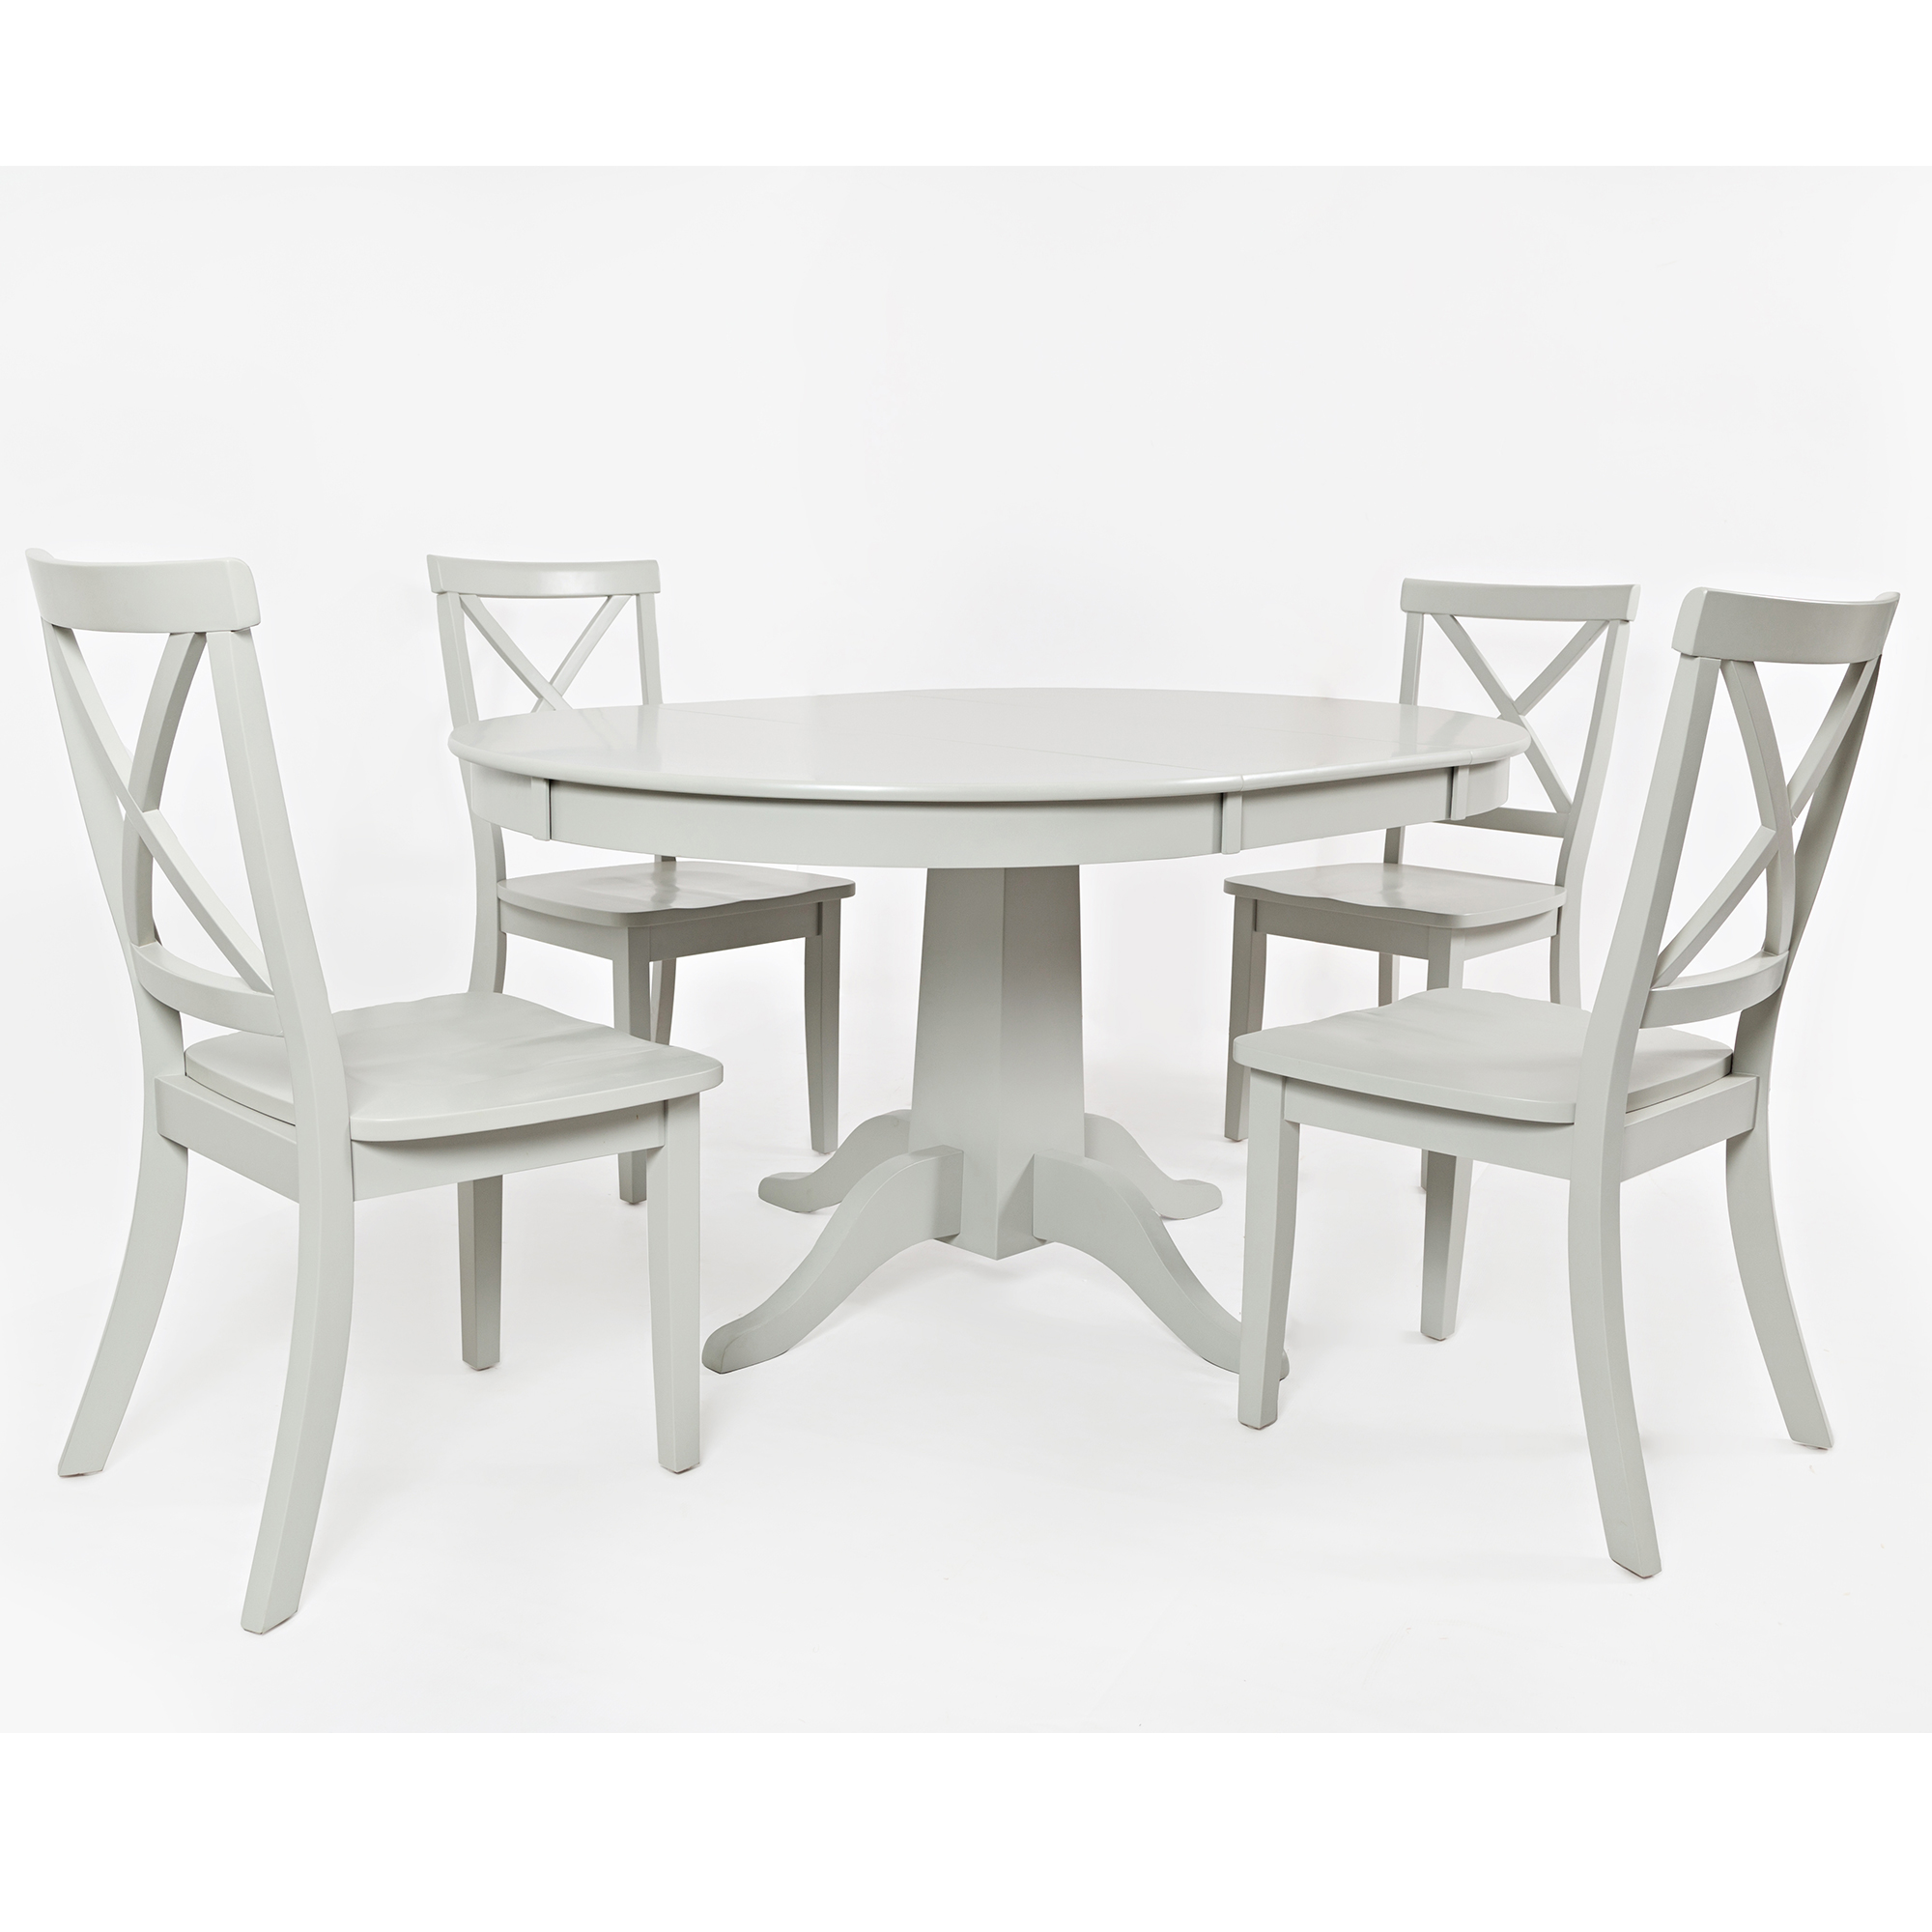 Amazing Everyday Classics Round To Oval Dining Table W 4 X Back Chairs In Dove By Jofran Andrewgaddart Wooden Chair Designs For Living Room Andrewgaddartcom